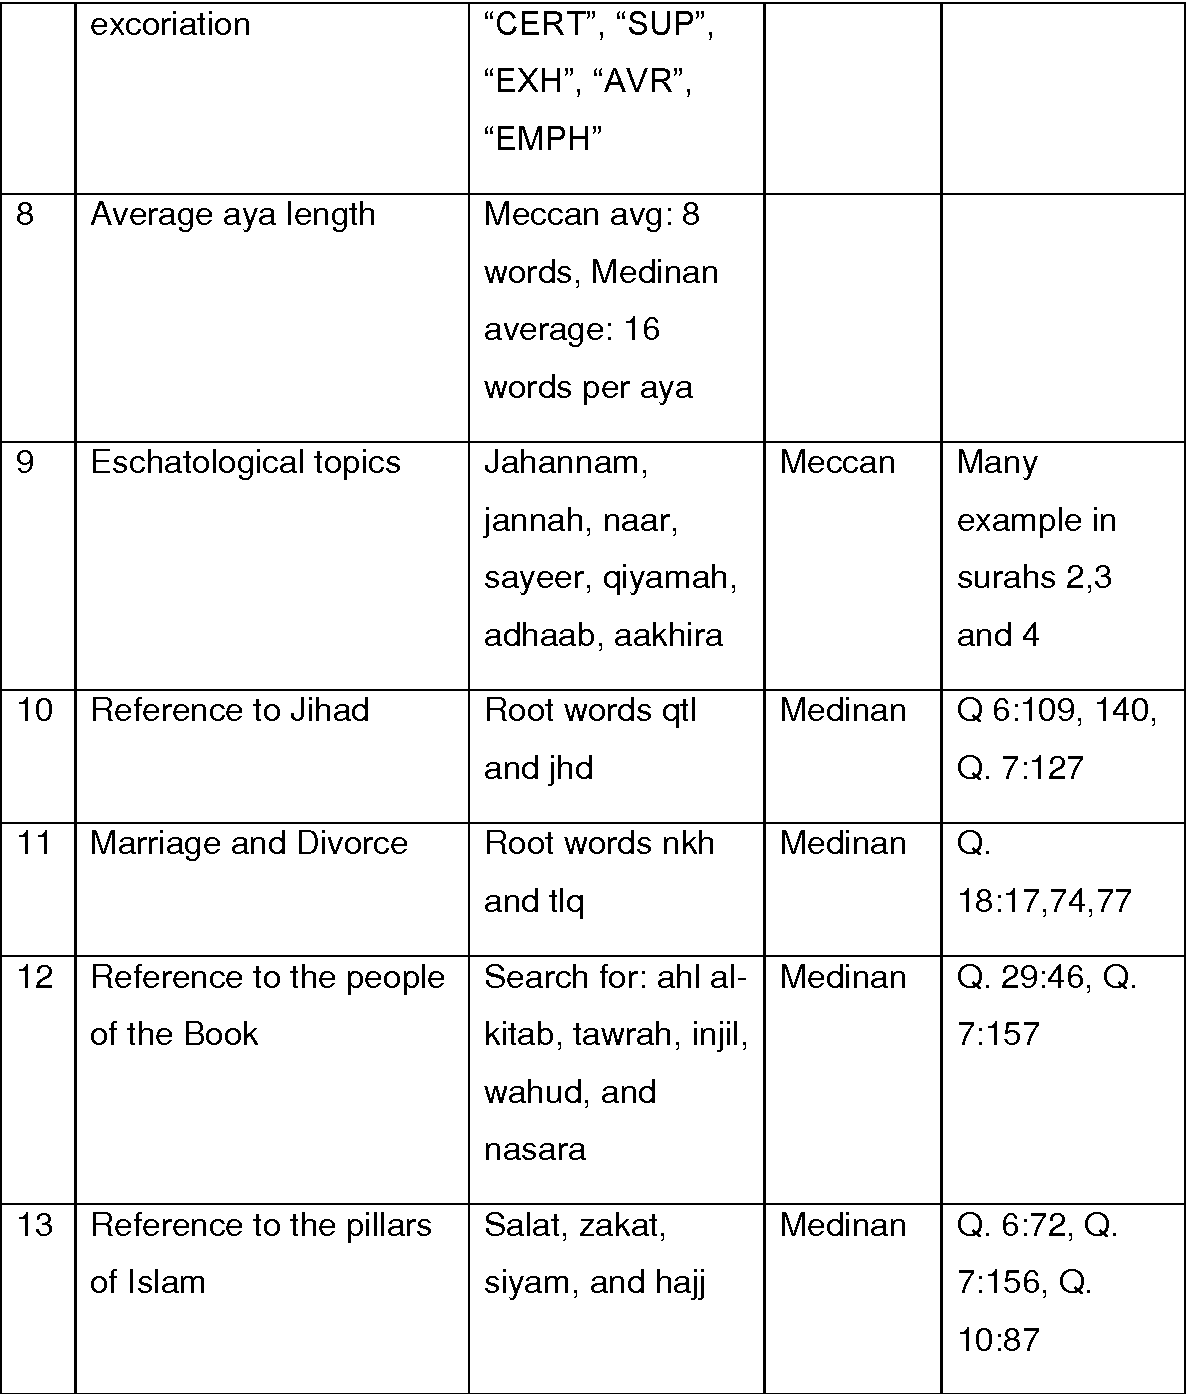 Table 8 2 from Annotation of conceptual co-reference and